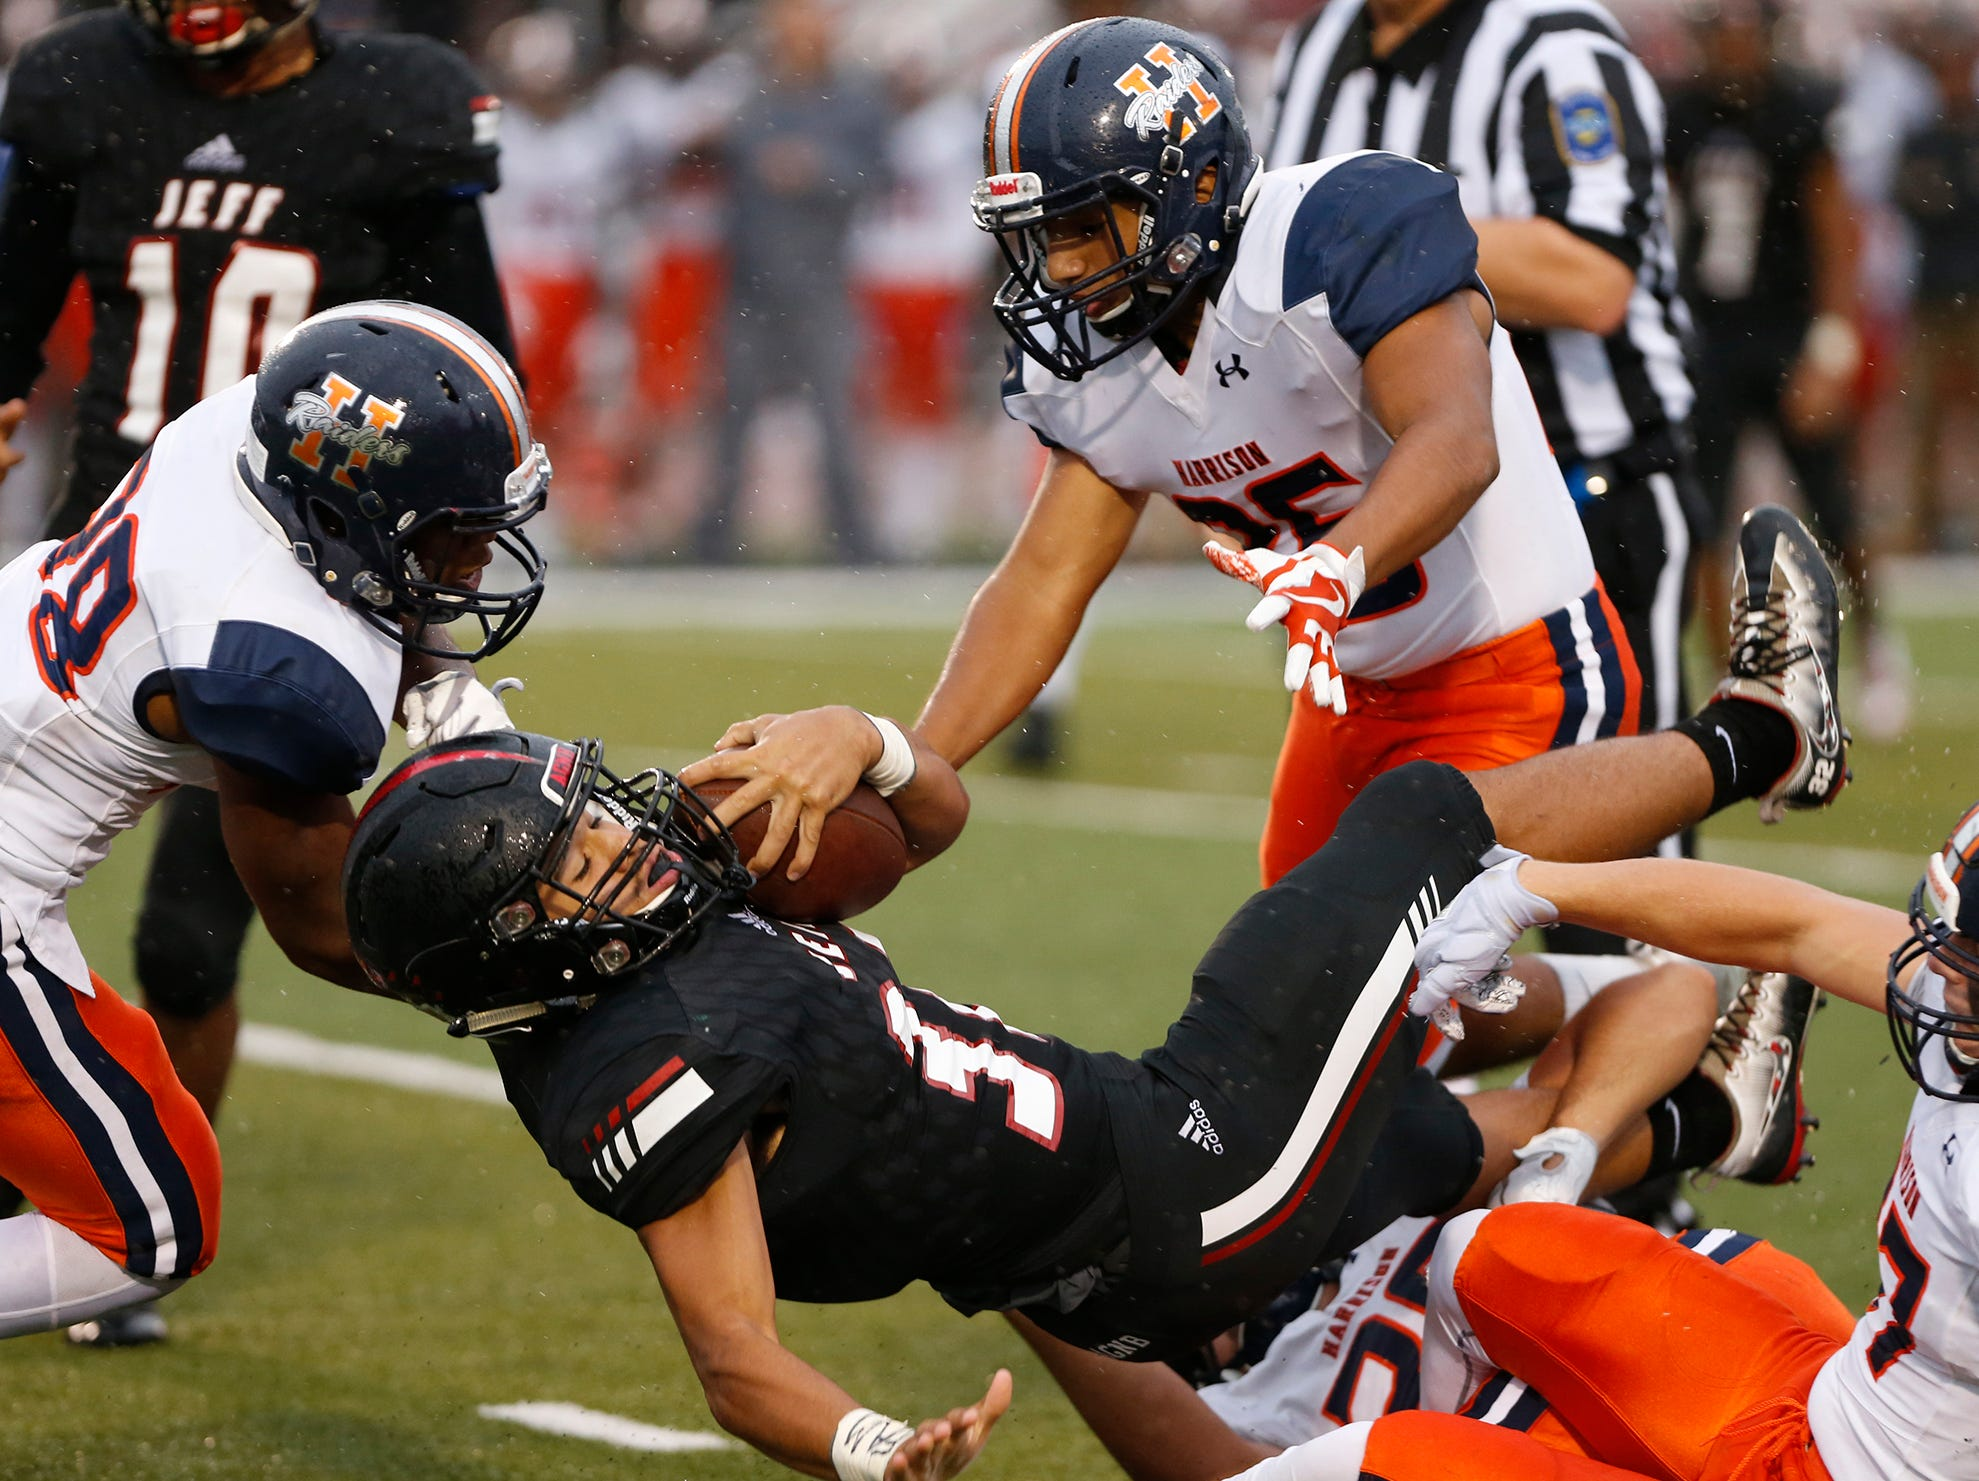 Marquis Munoz of Lafayette Jeff is brought down after a short gain against Harrison Friday, September 7, 2018, at Scheumann Stadium. Jeff defeated Harrison 31-14.